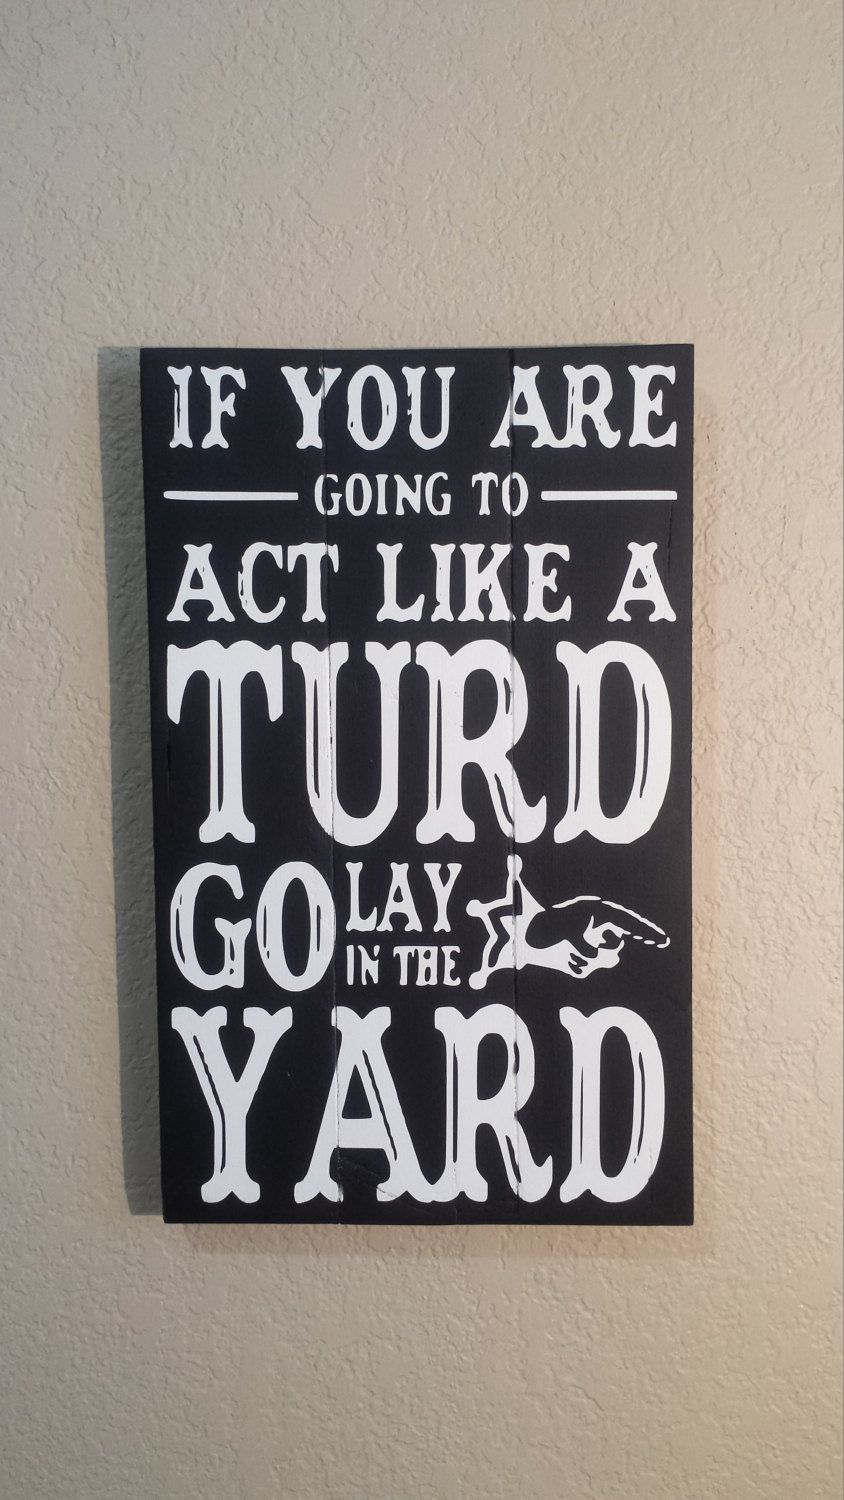 Best Funny Sayings If you are going to Act Like a Turd go lay in the Yard Handpainted Pallet Wood Sign, Funny Turd Sign, Funny Sayings 6